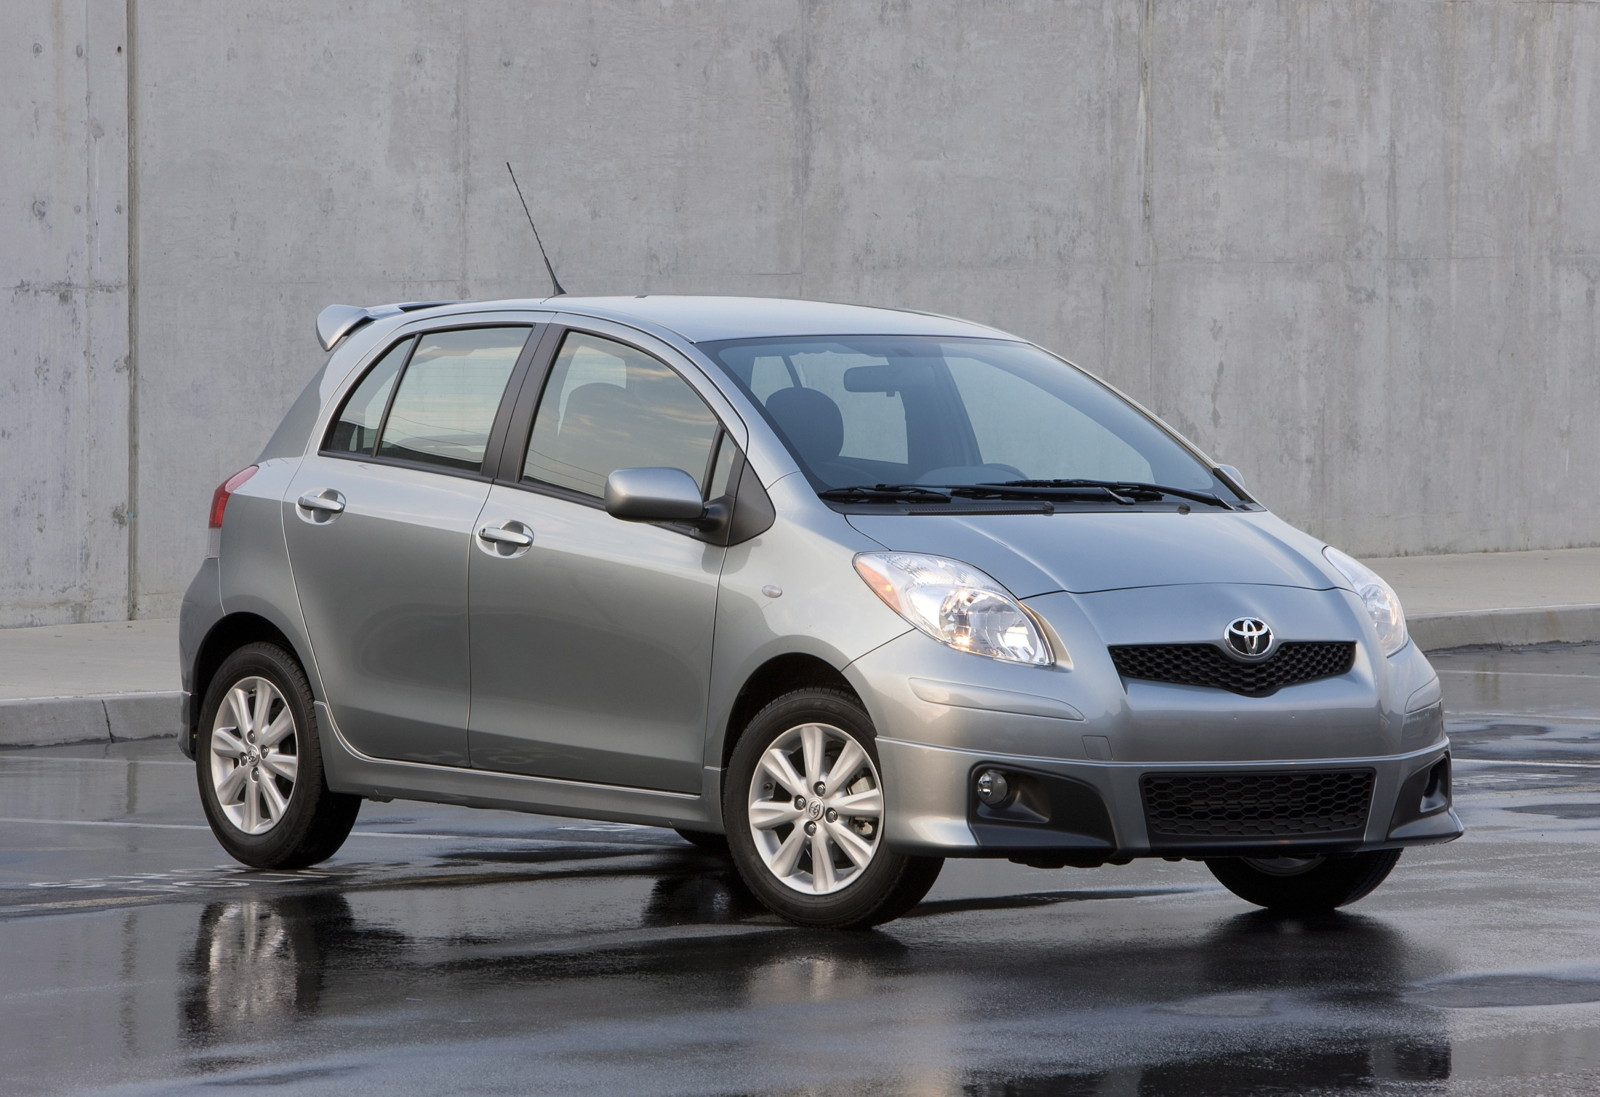 2010 Toyota Yaris Review, Ratings, Specs, Prices, and ...